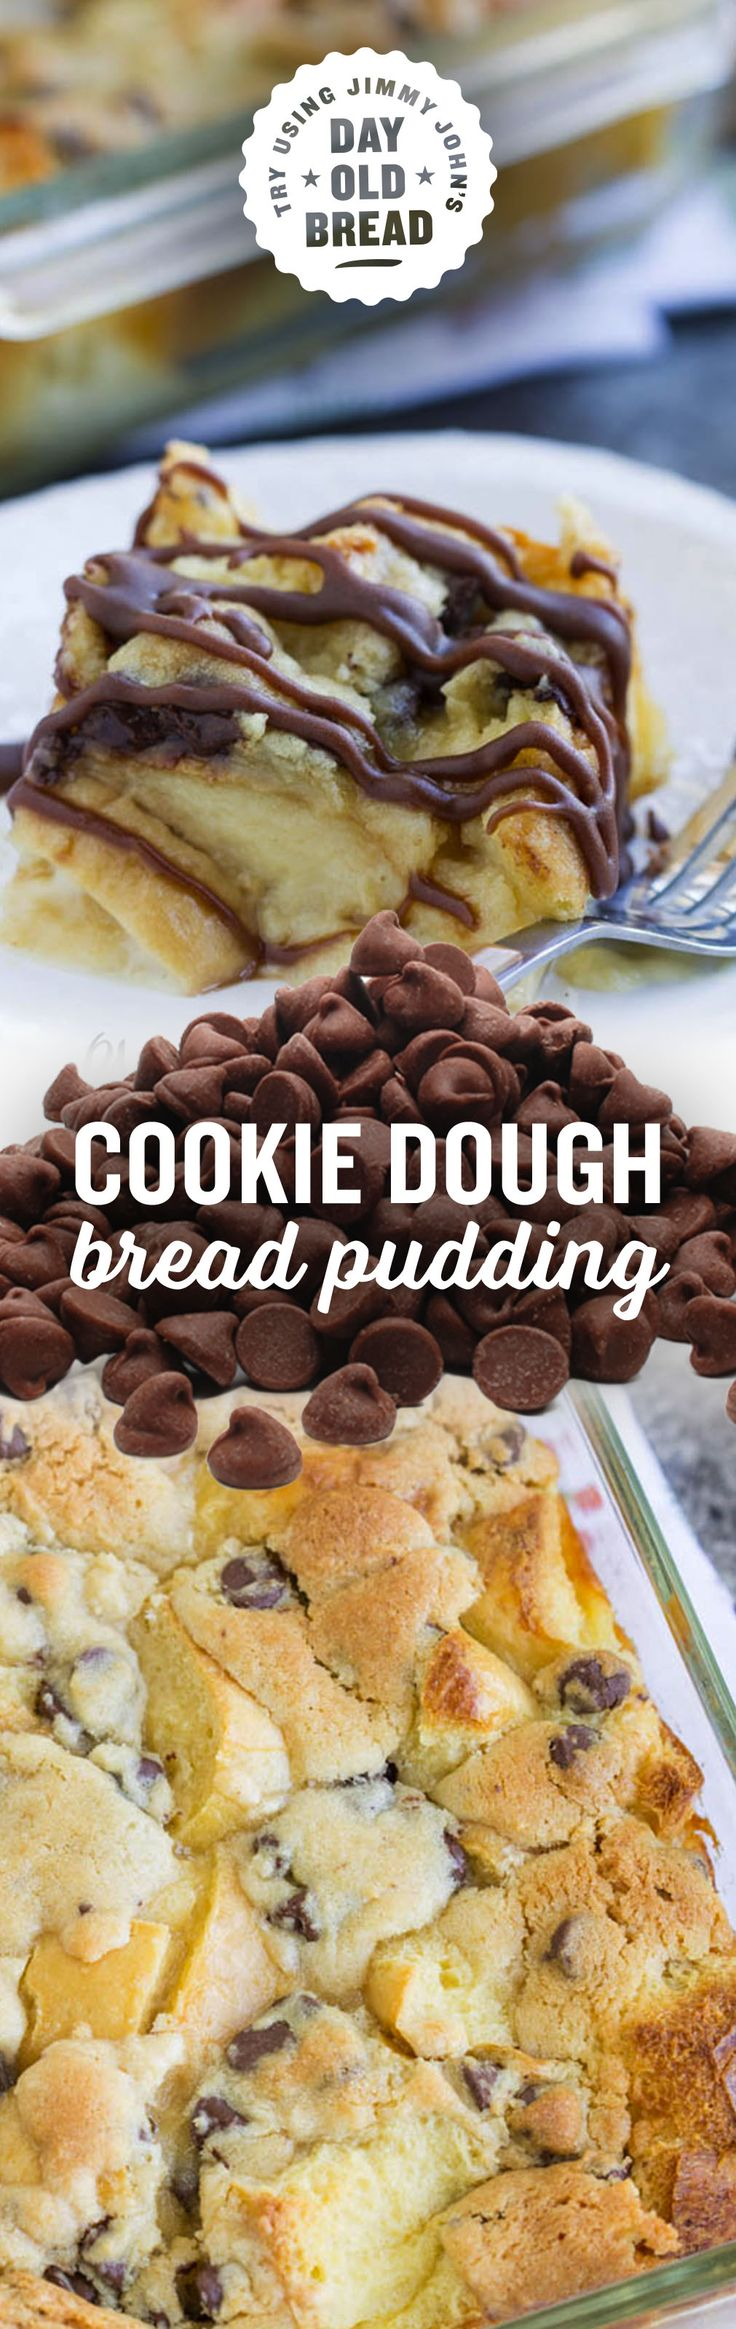 Chocolate Chip Cookie Dough Bread Pudding. Try making with Jimmy John's Day Old French bread for a yummy treat!